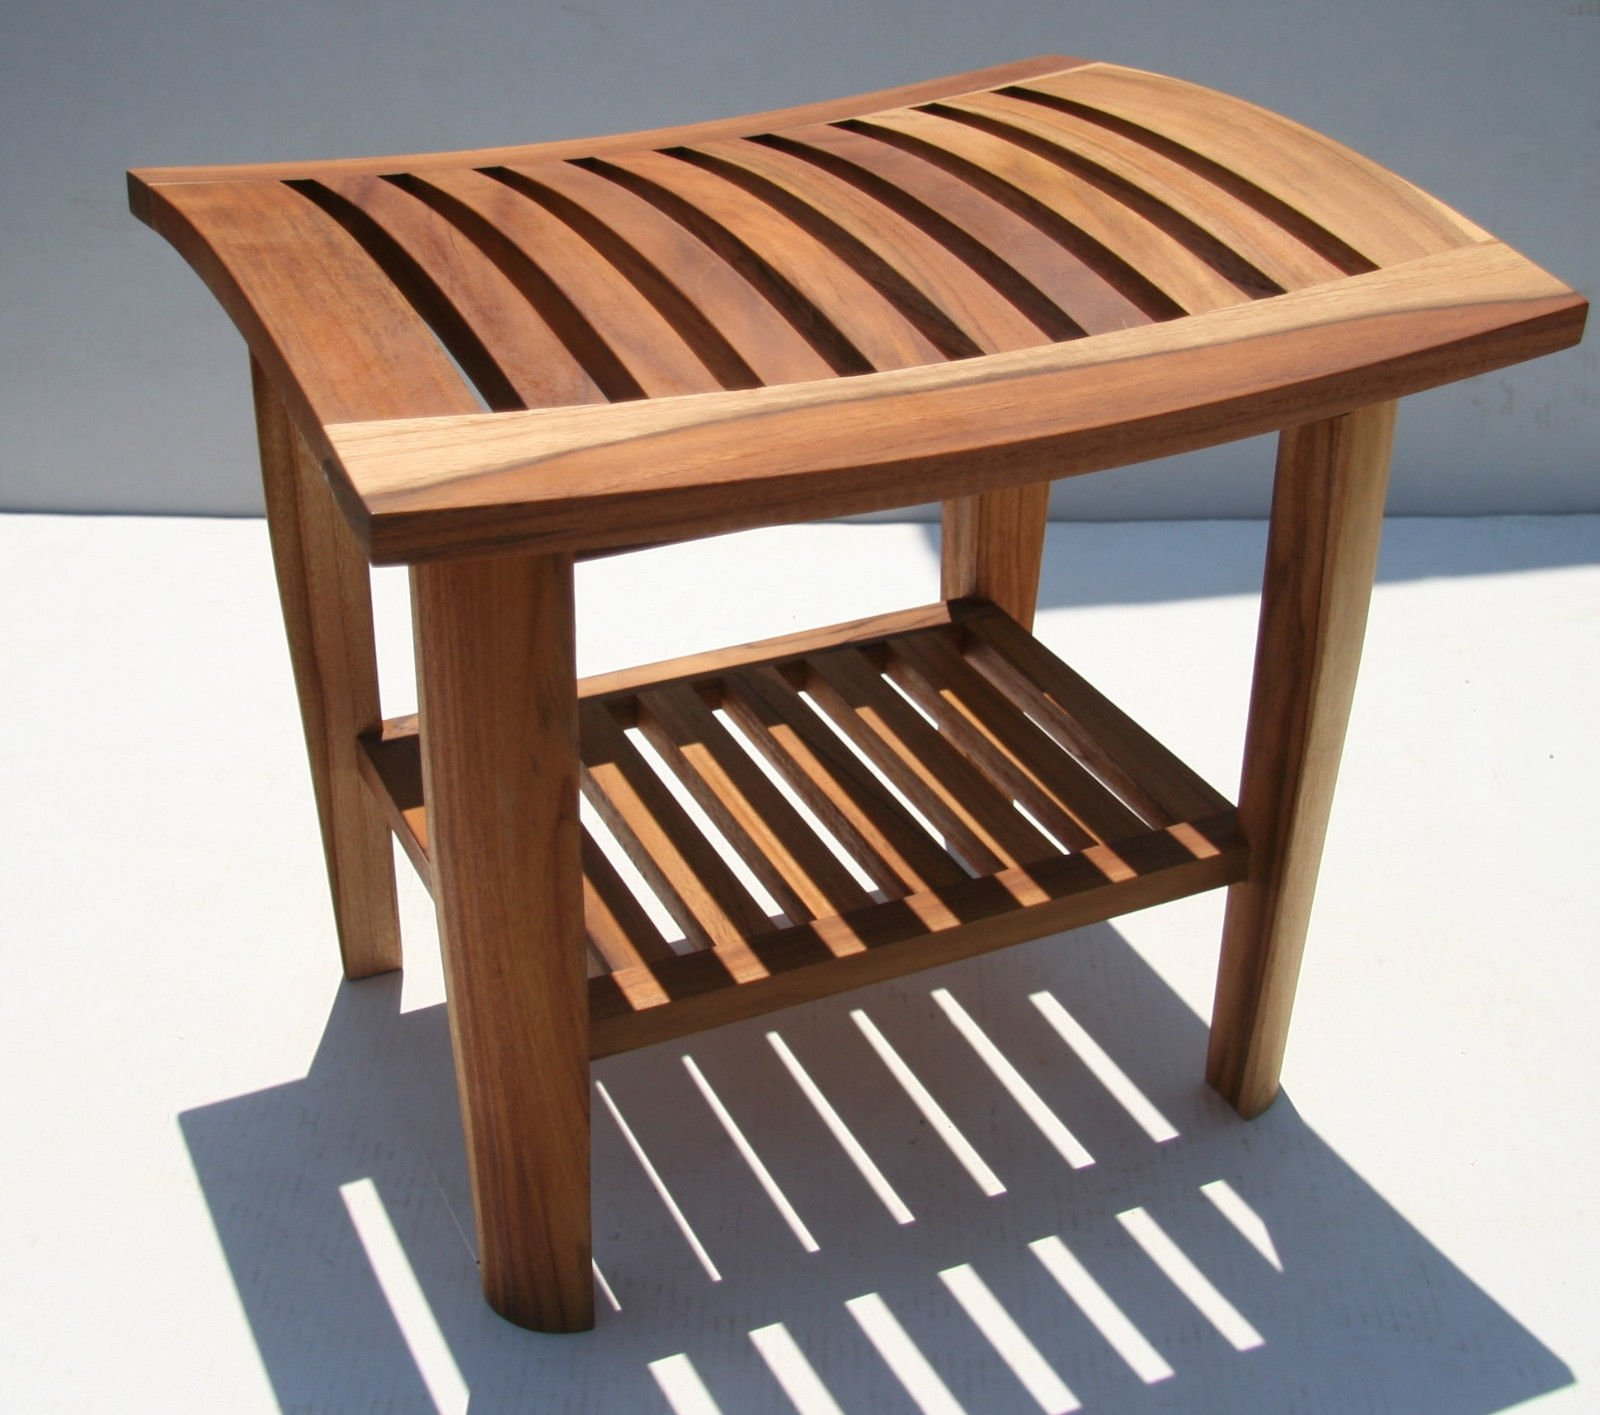 Teak Stool with shelf made for indoor or outdoor use, fully-assembled TEAK WOOD